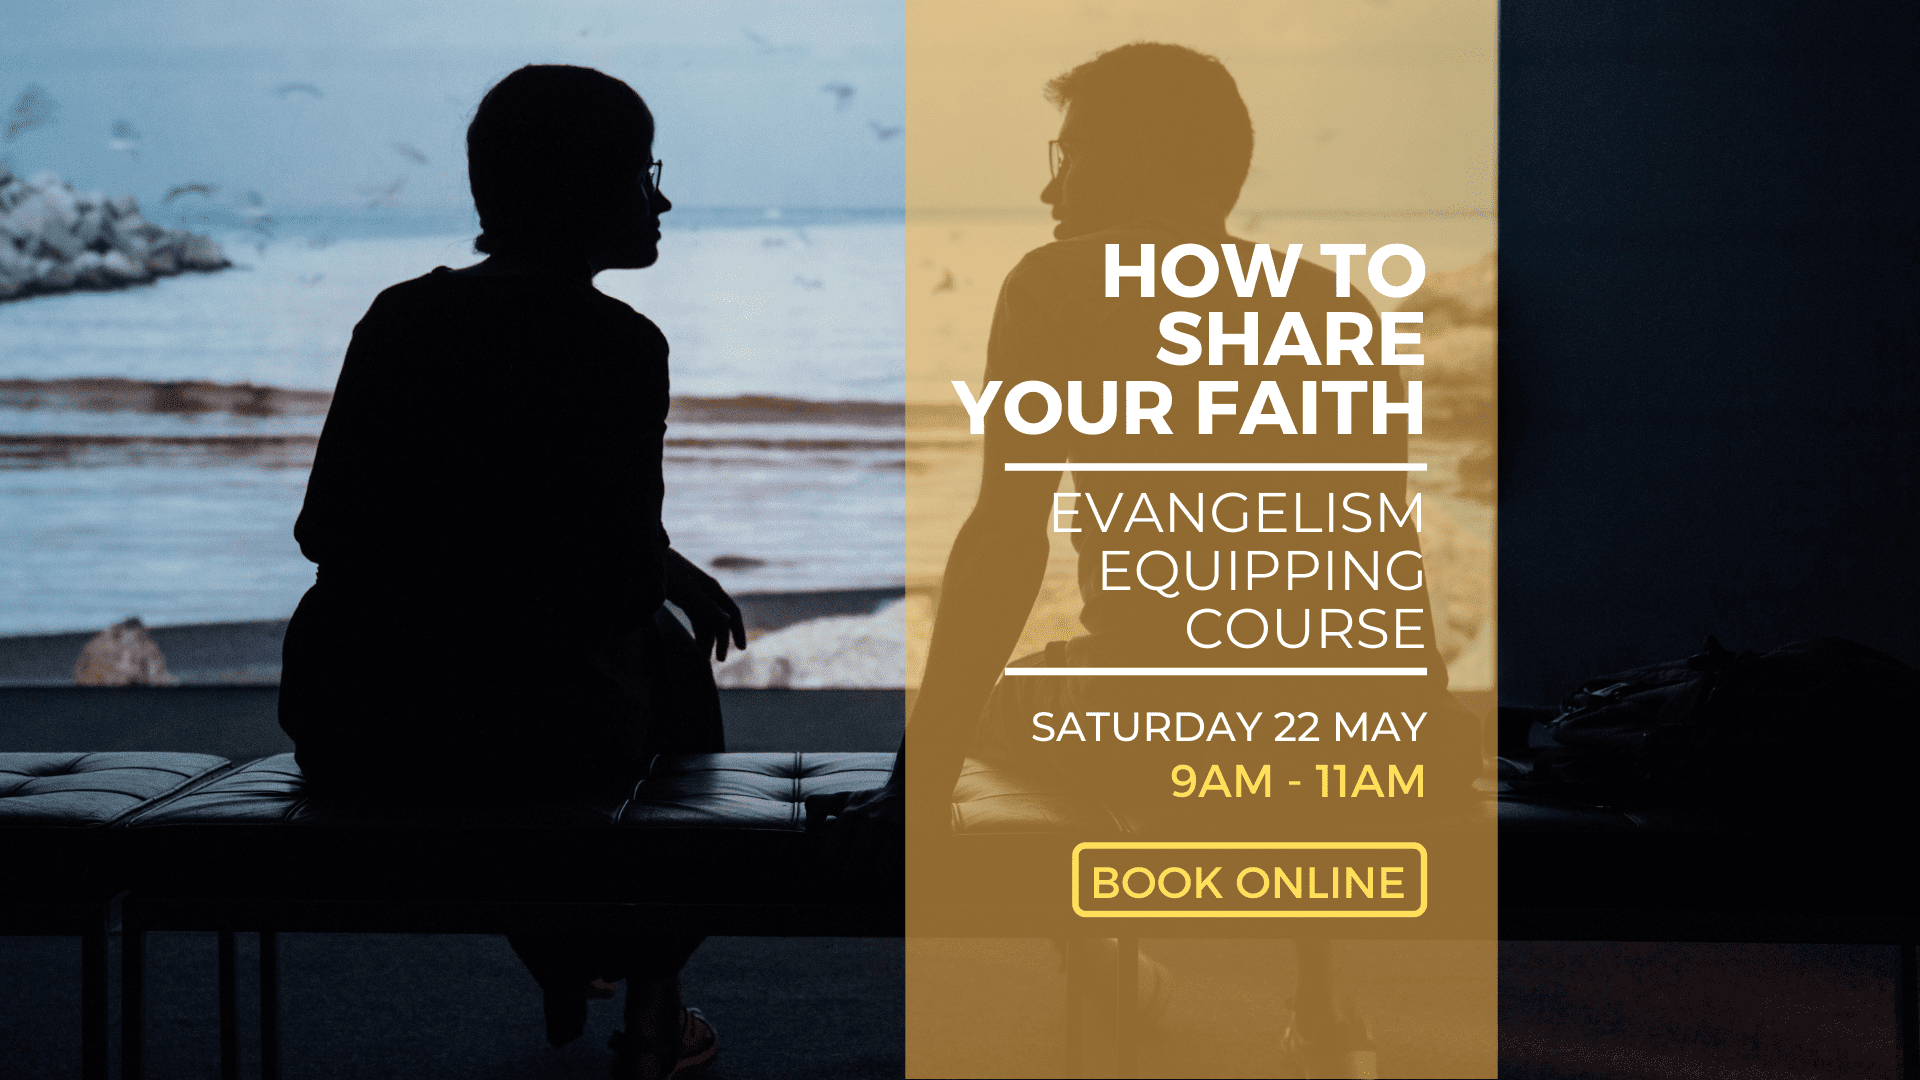 Evangelism Equipping Course | How to Share your Faith at newDAY Church Edenvale